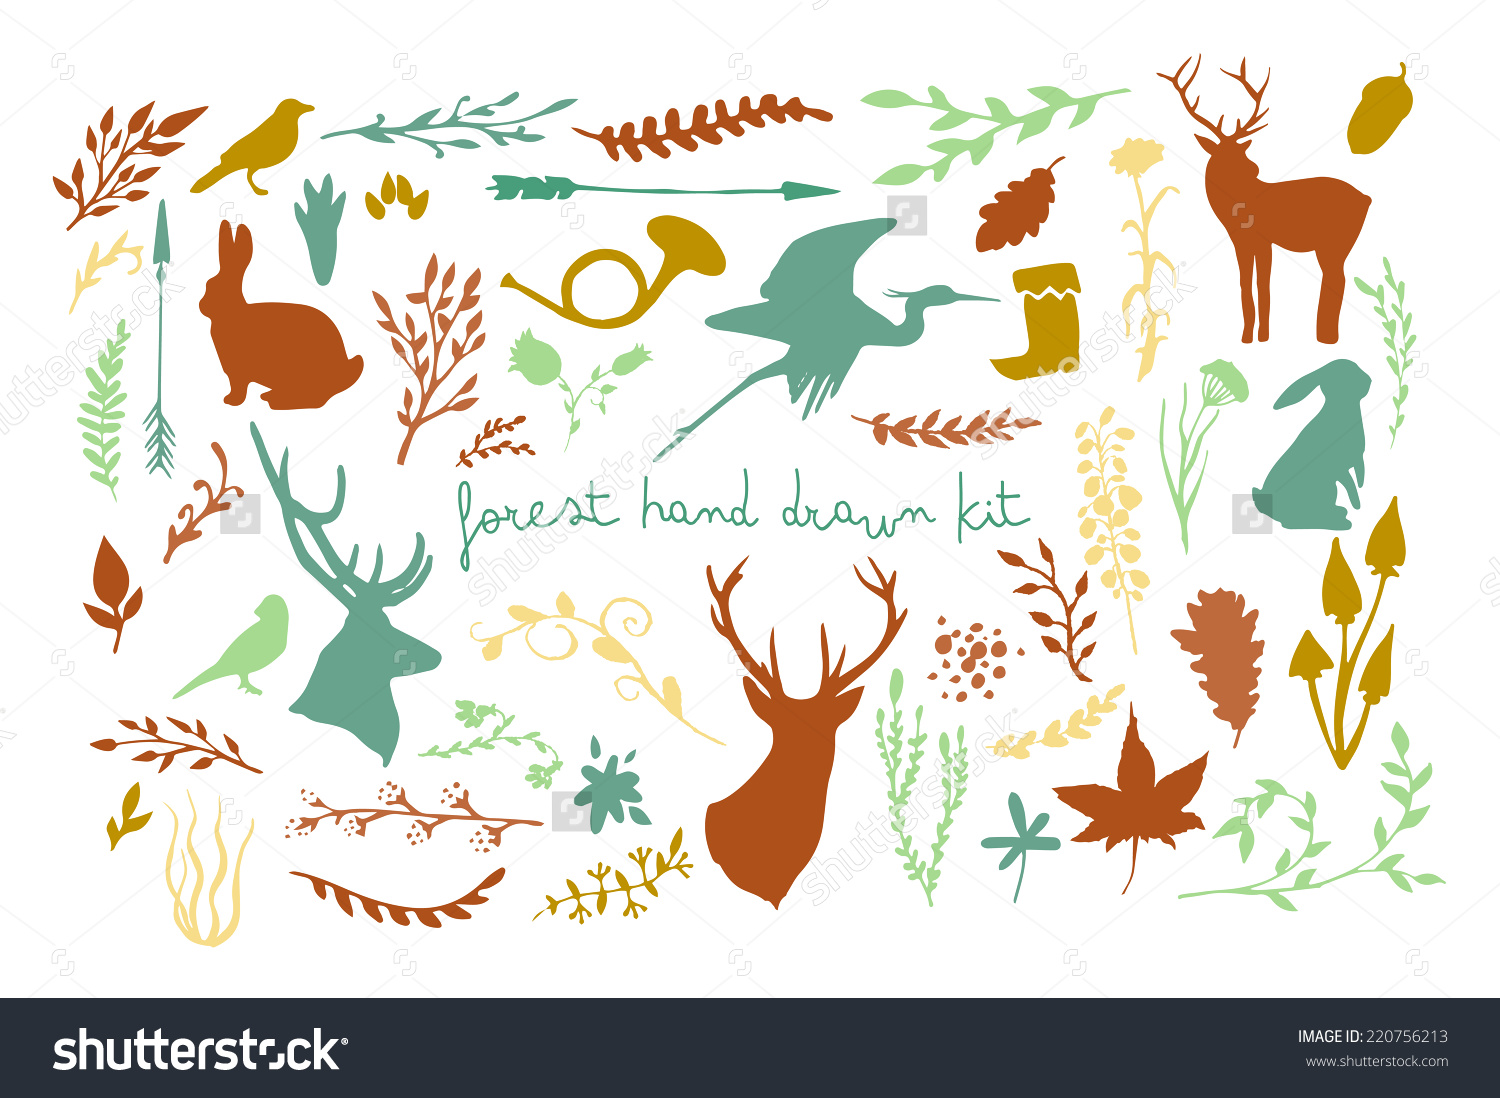 Forest Animals Plants Silhouette Set Hand Stock Vector 220756213.